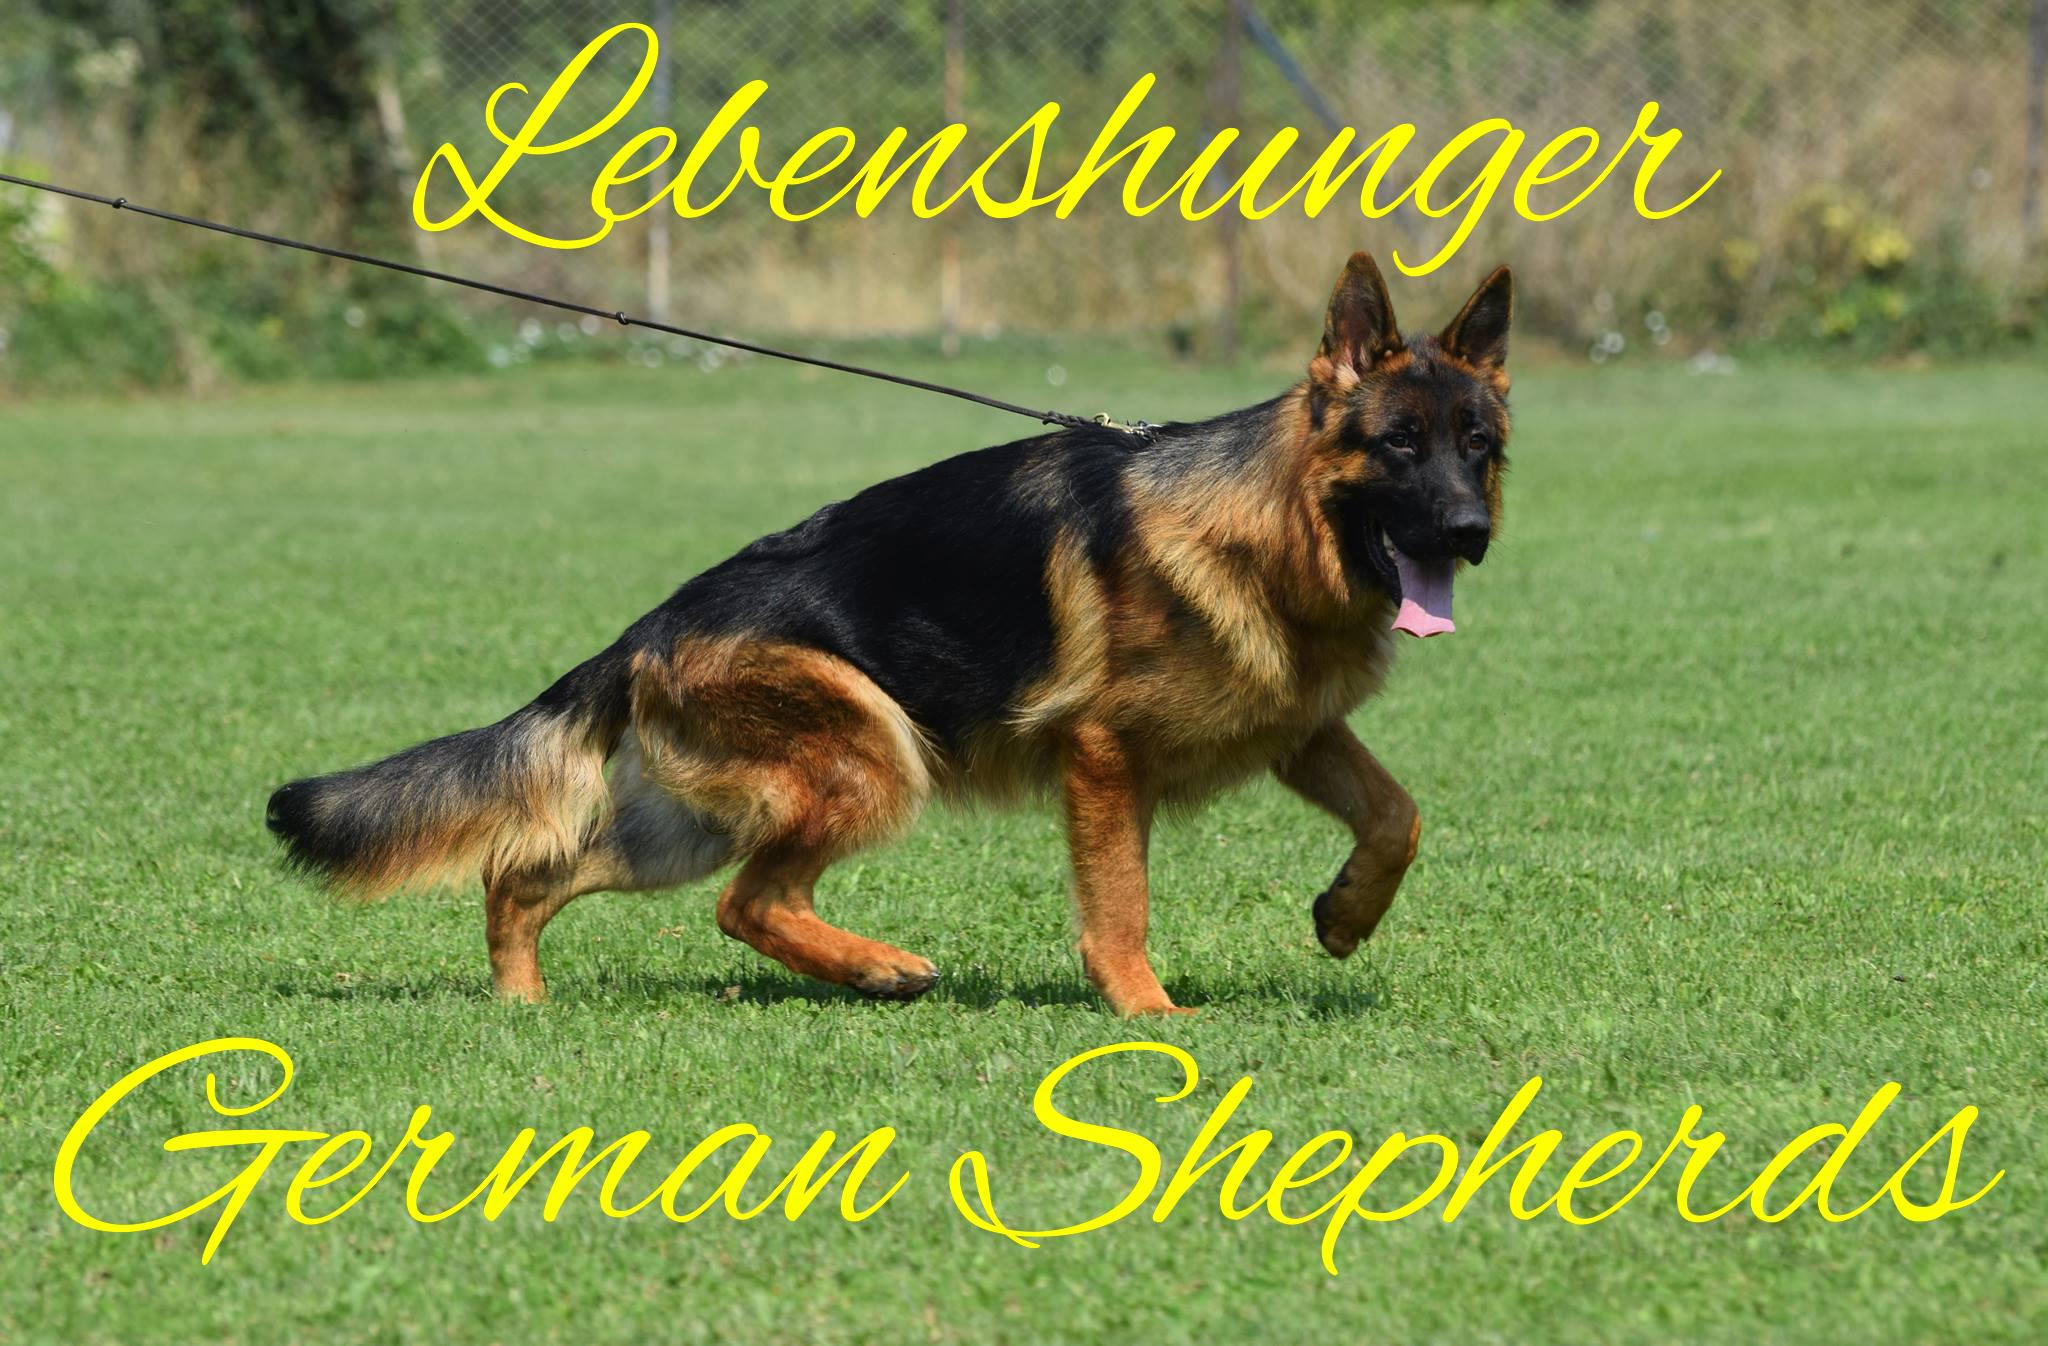 Lebenshunger German Shepherds Logo